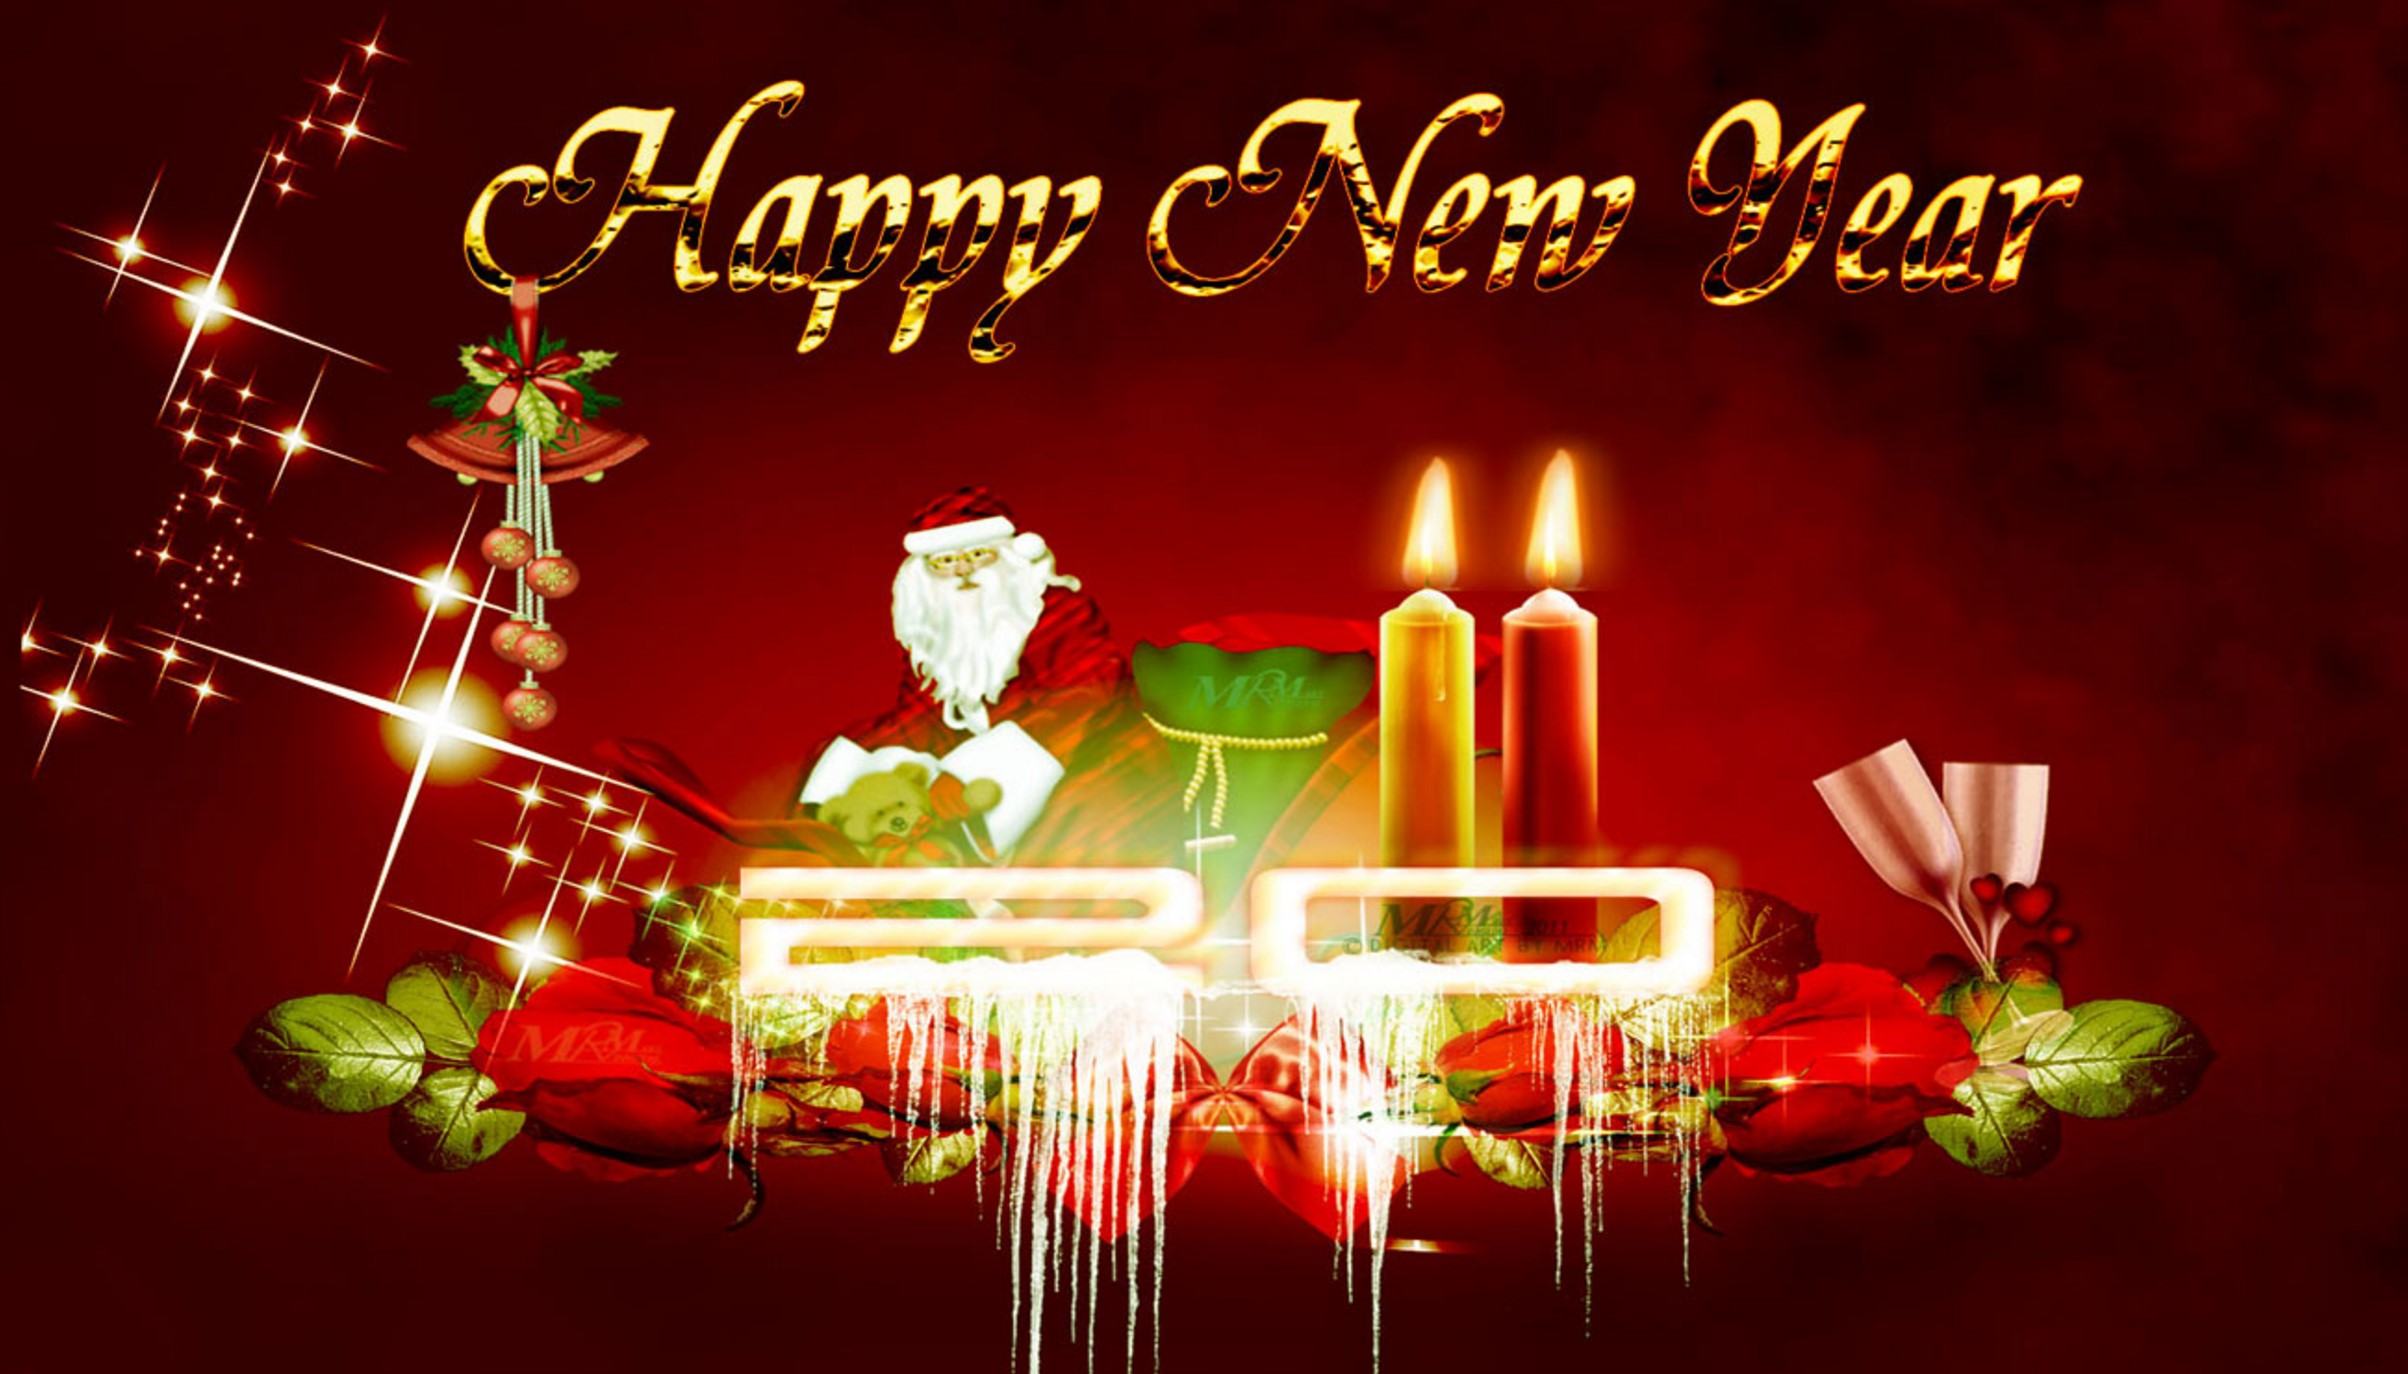 Christmas and new Year wallpaper image